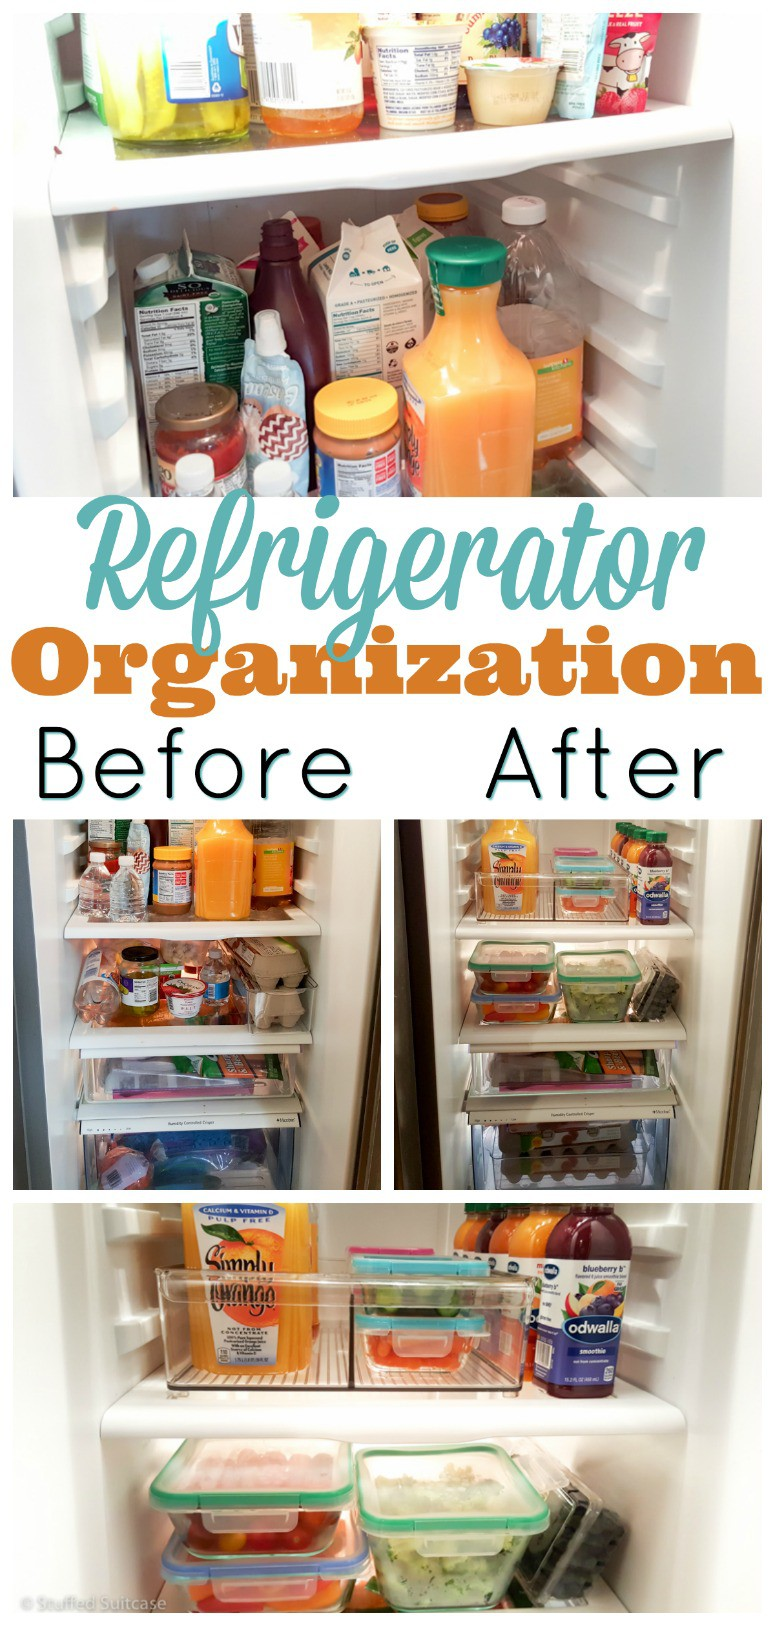 Our fridge was a chaotic mess of bottles and leftovers, with our produce spoiling due to being buried in the bottom drawers. My refrigerator organization project focused on healthy eating and moved the fruits and veggies up!